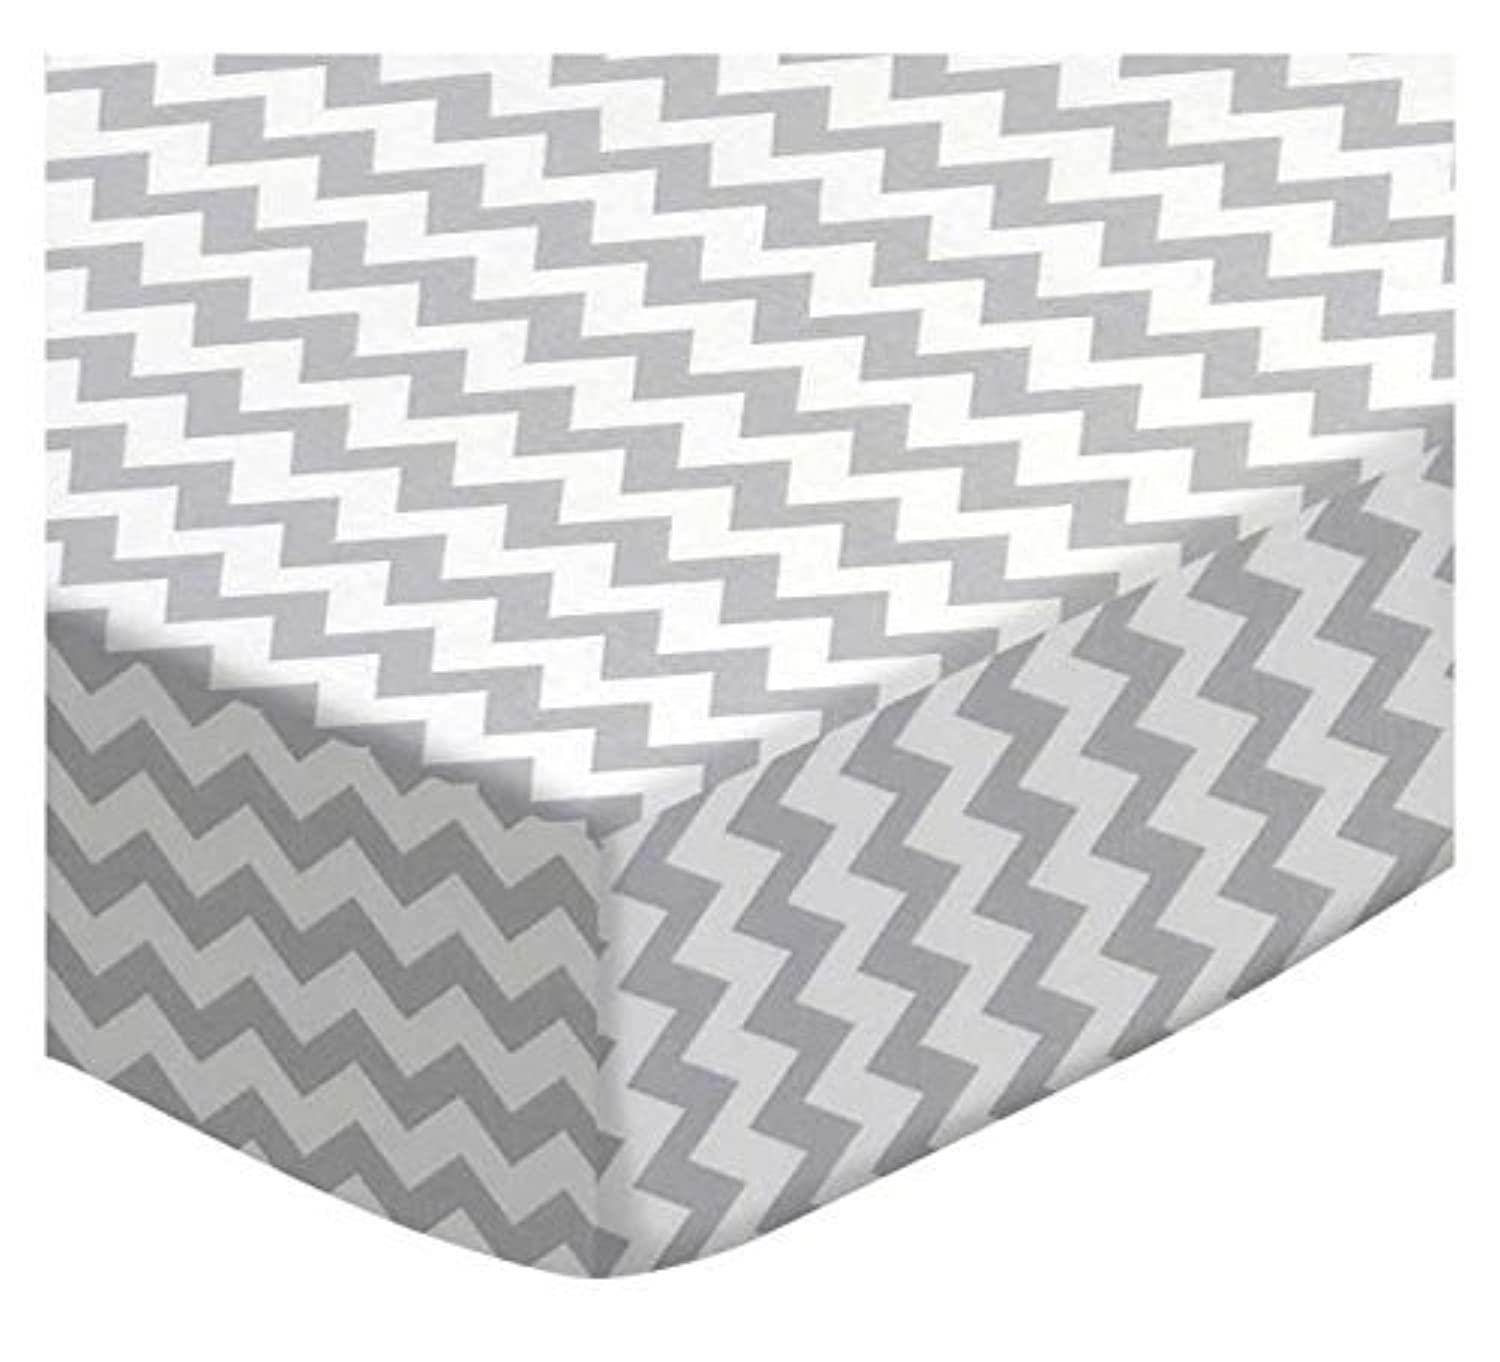 SheetWorld Fitted Sheet (Fits BabyBjorn Travel Crib Light) - Grey Chevron Zigzag - Made In USA [並行輸入品]